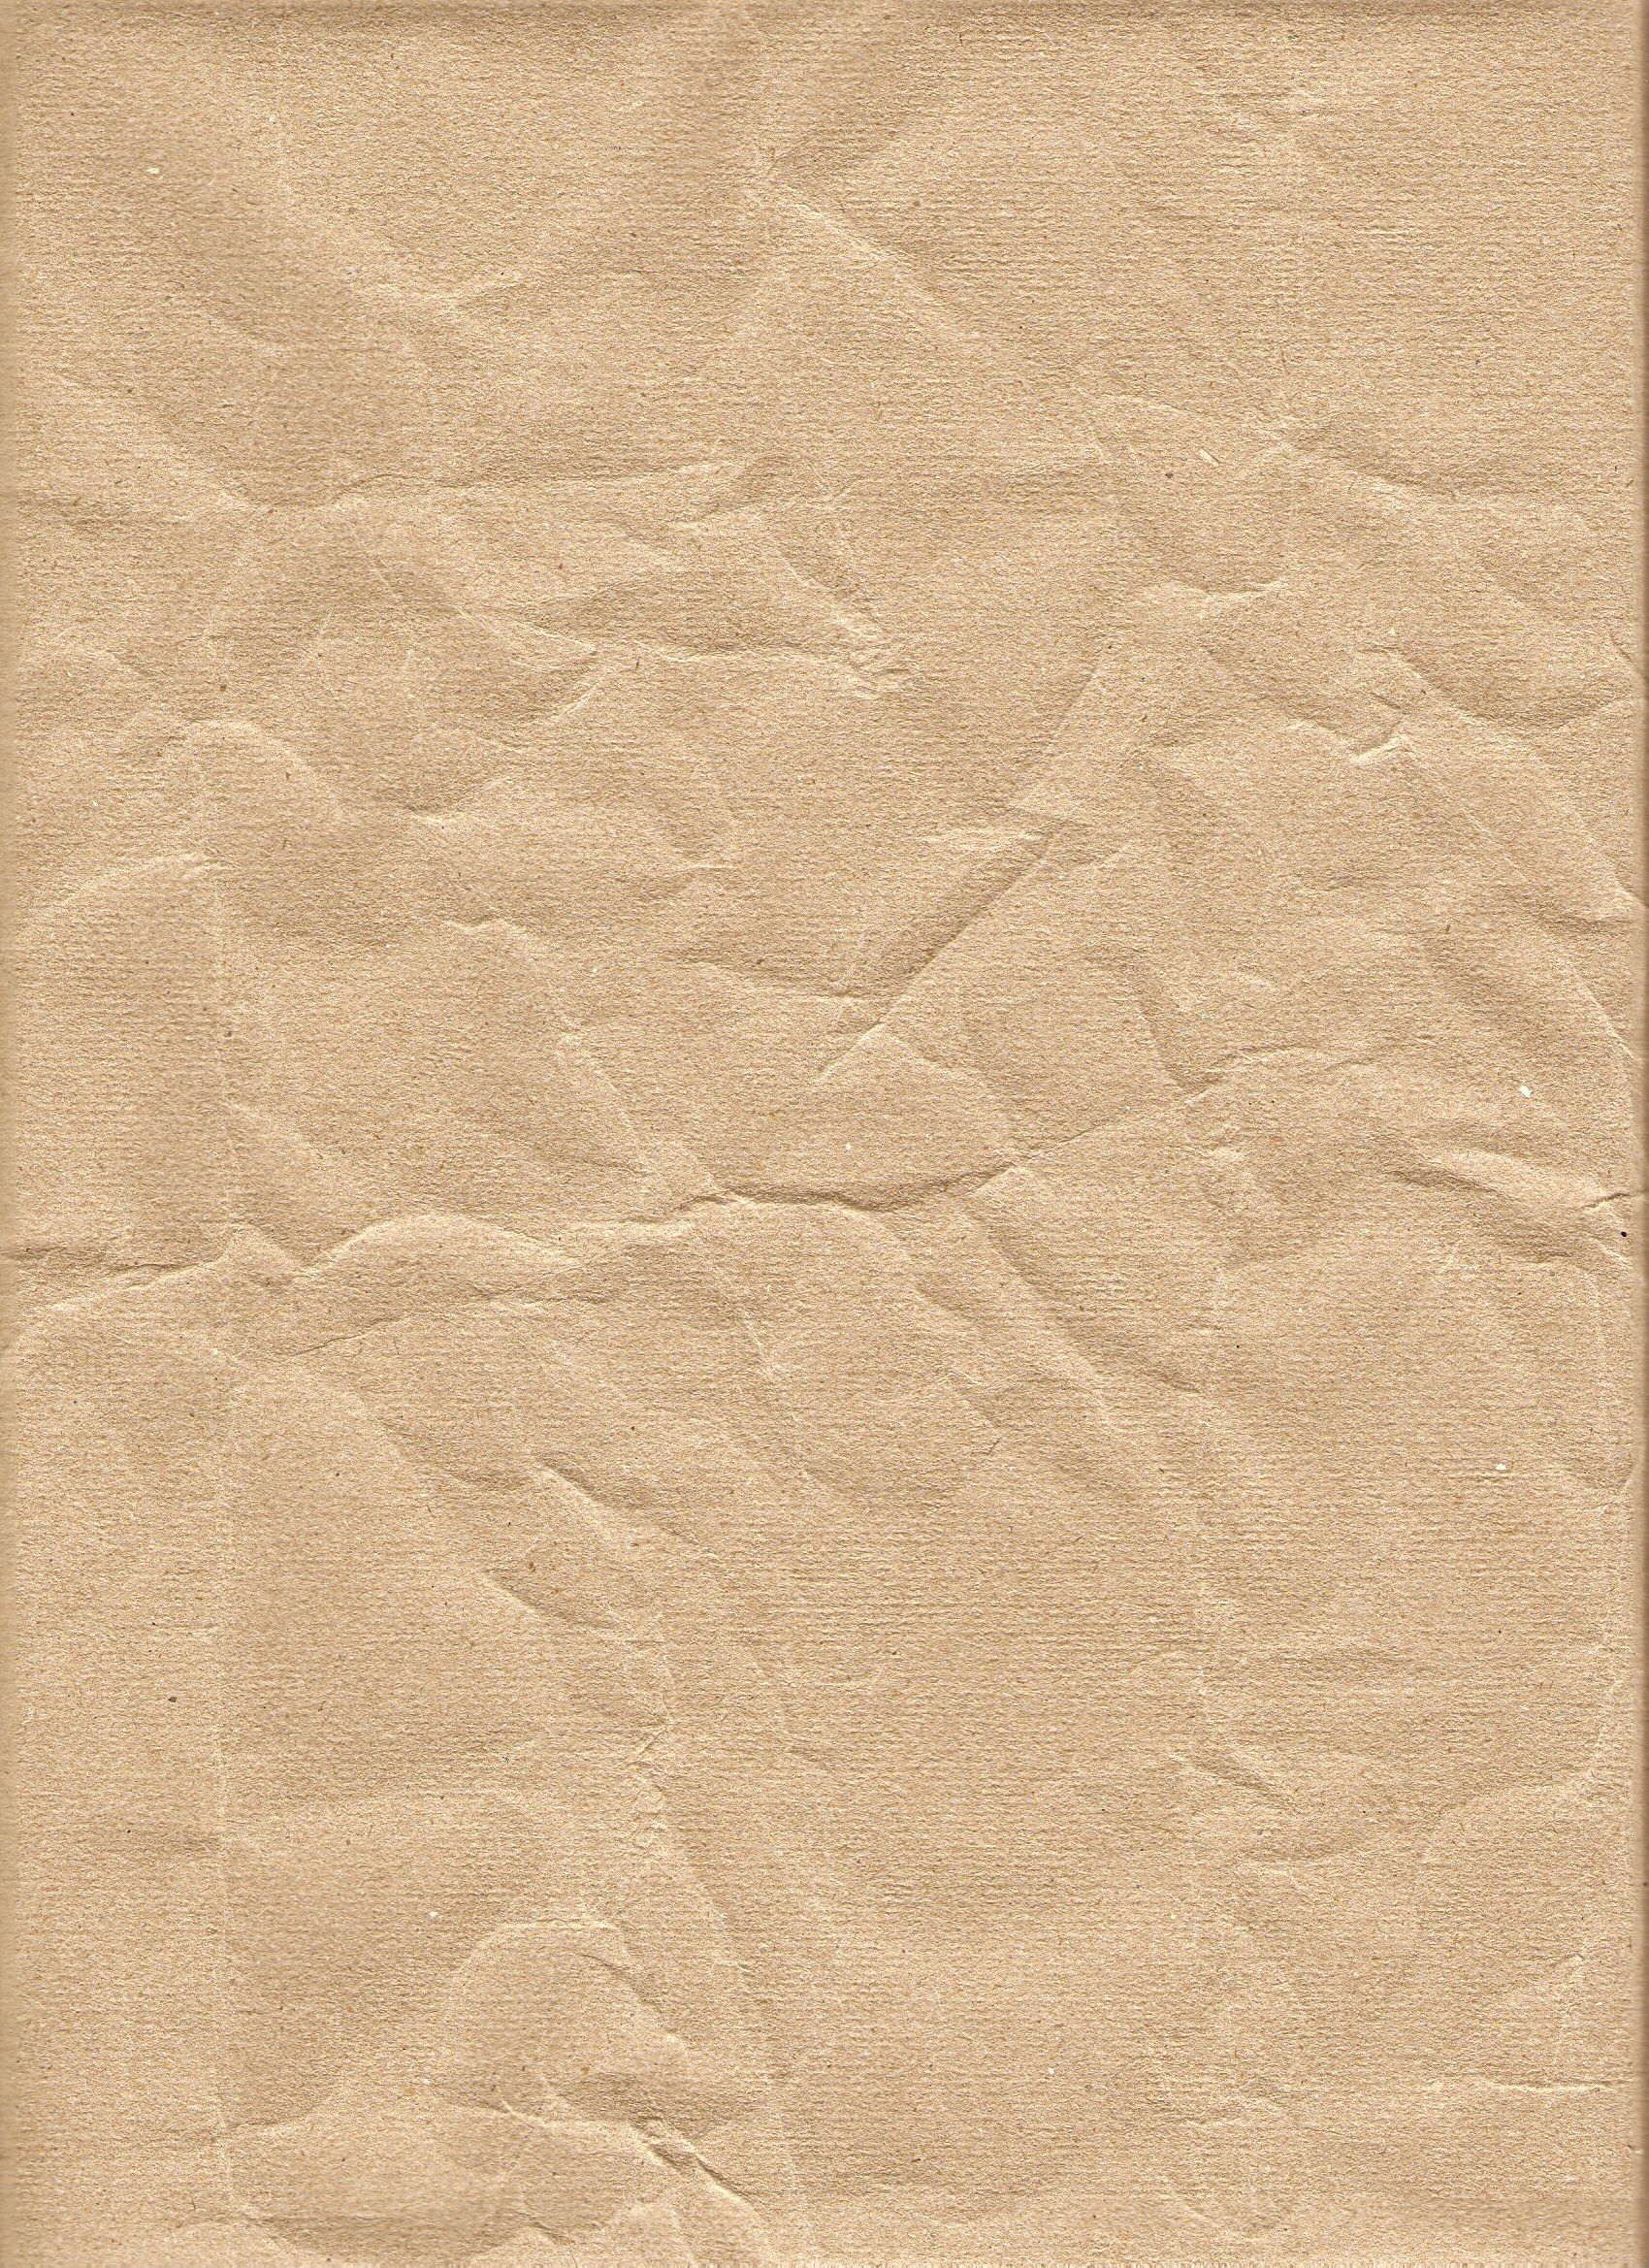 crumpled paper texture by sajja crumpled paper paper background background patterns texture photography